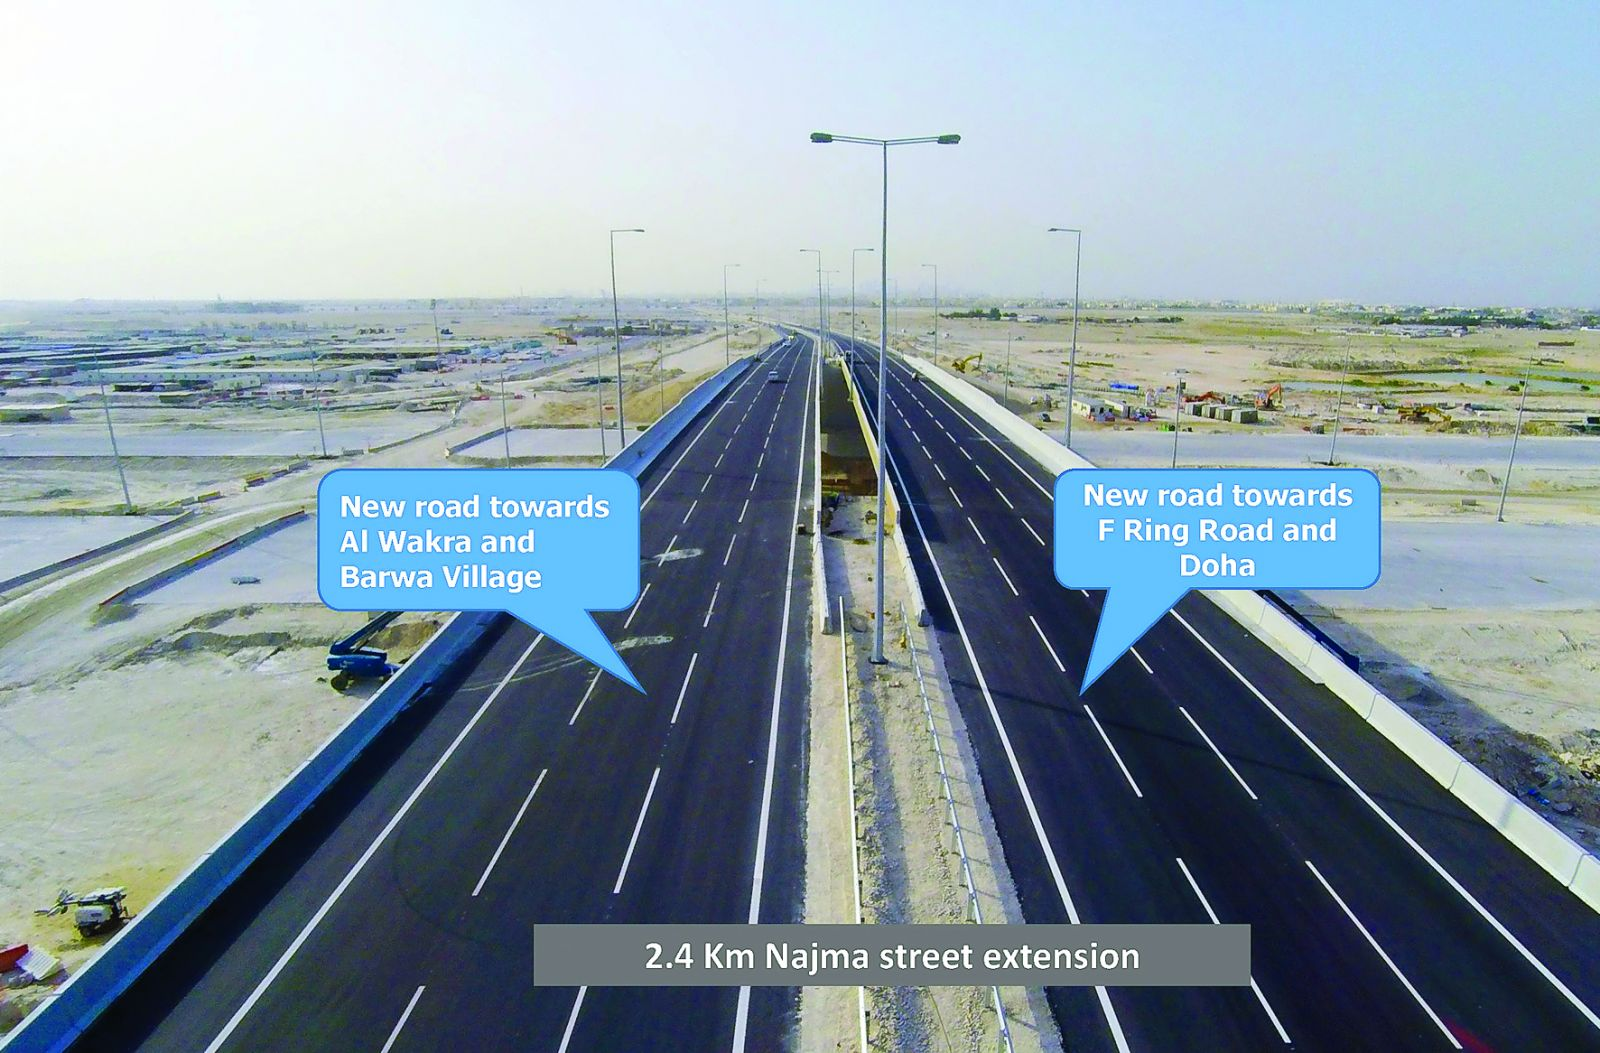 The Najma Street Extension that connects F-Ring Road